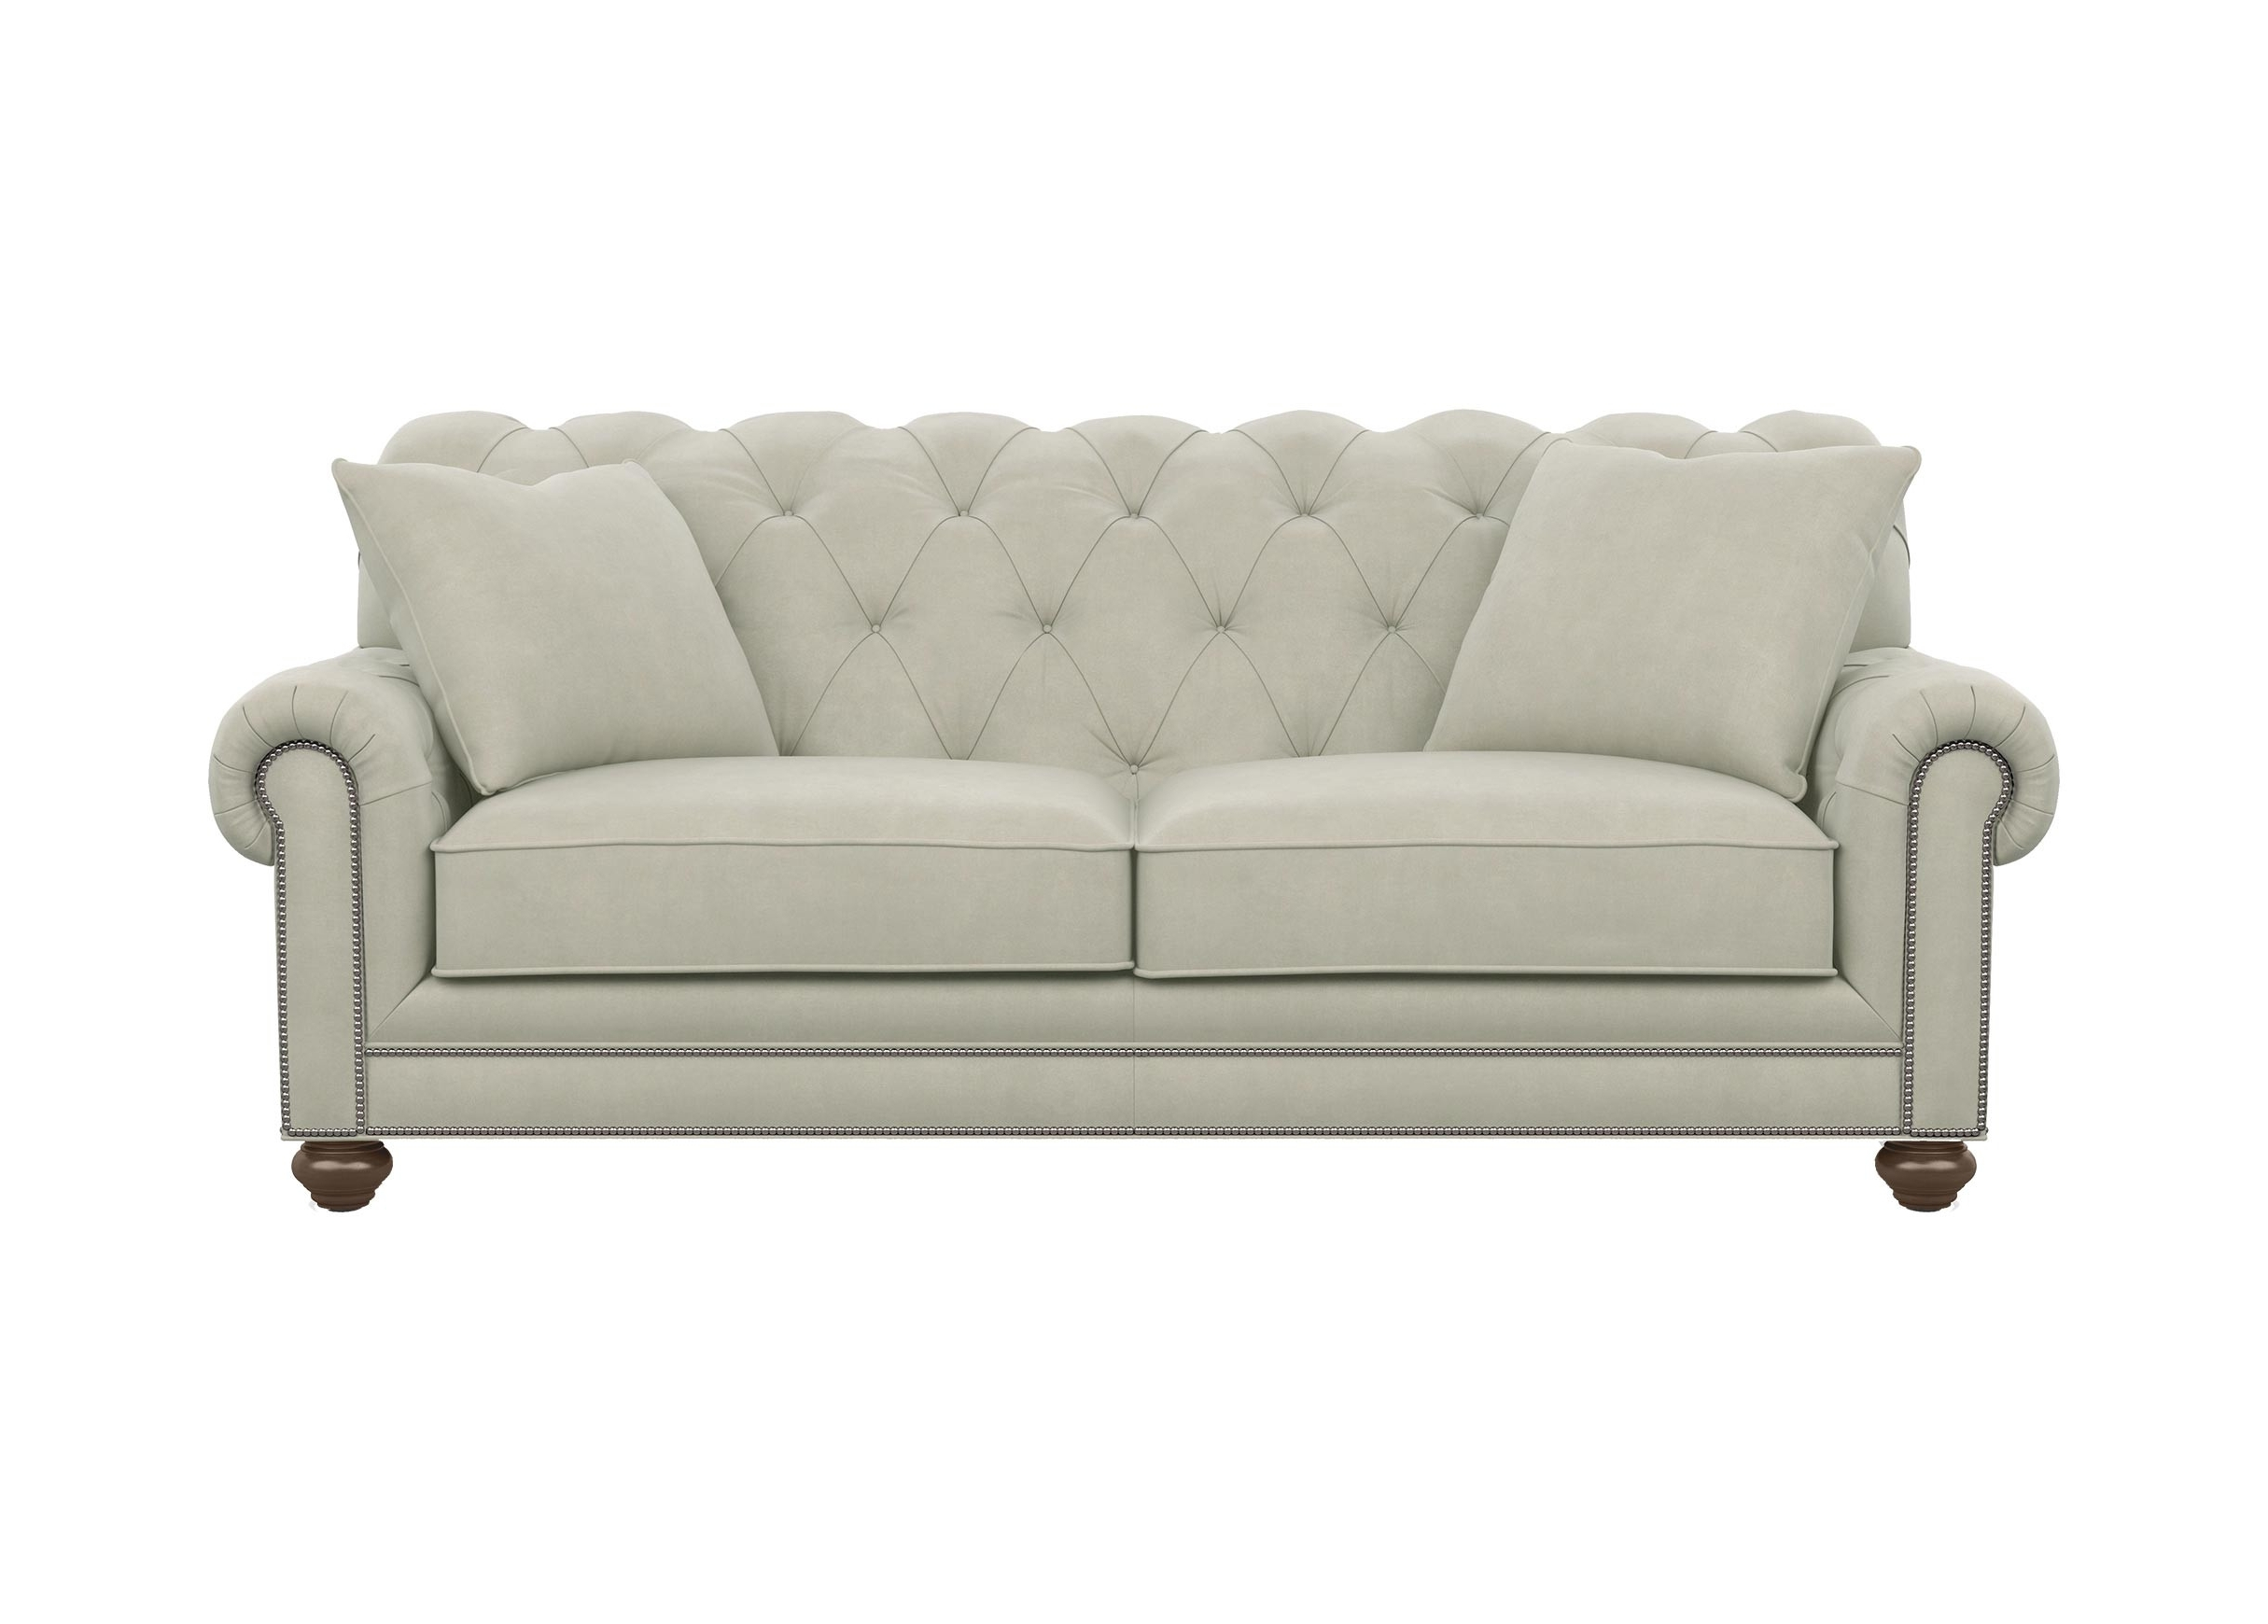 Most Popular Duluth Mn Sectional Sofas Throughout Furniture : Ethan Allen Down Filled Sofa Beautiful Sectional Sofas (View 6 of 20)